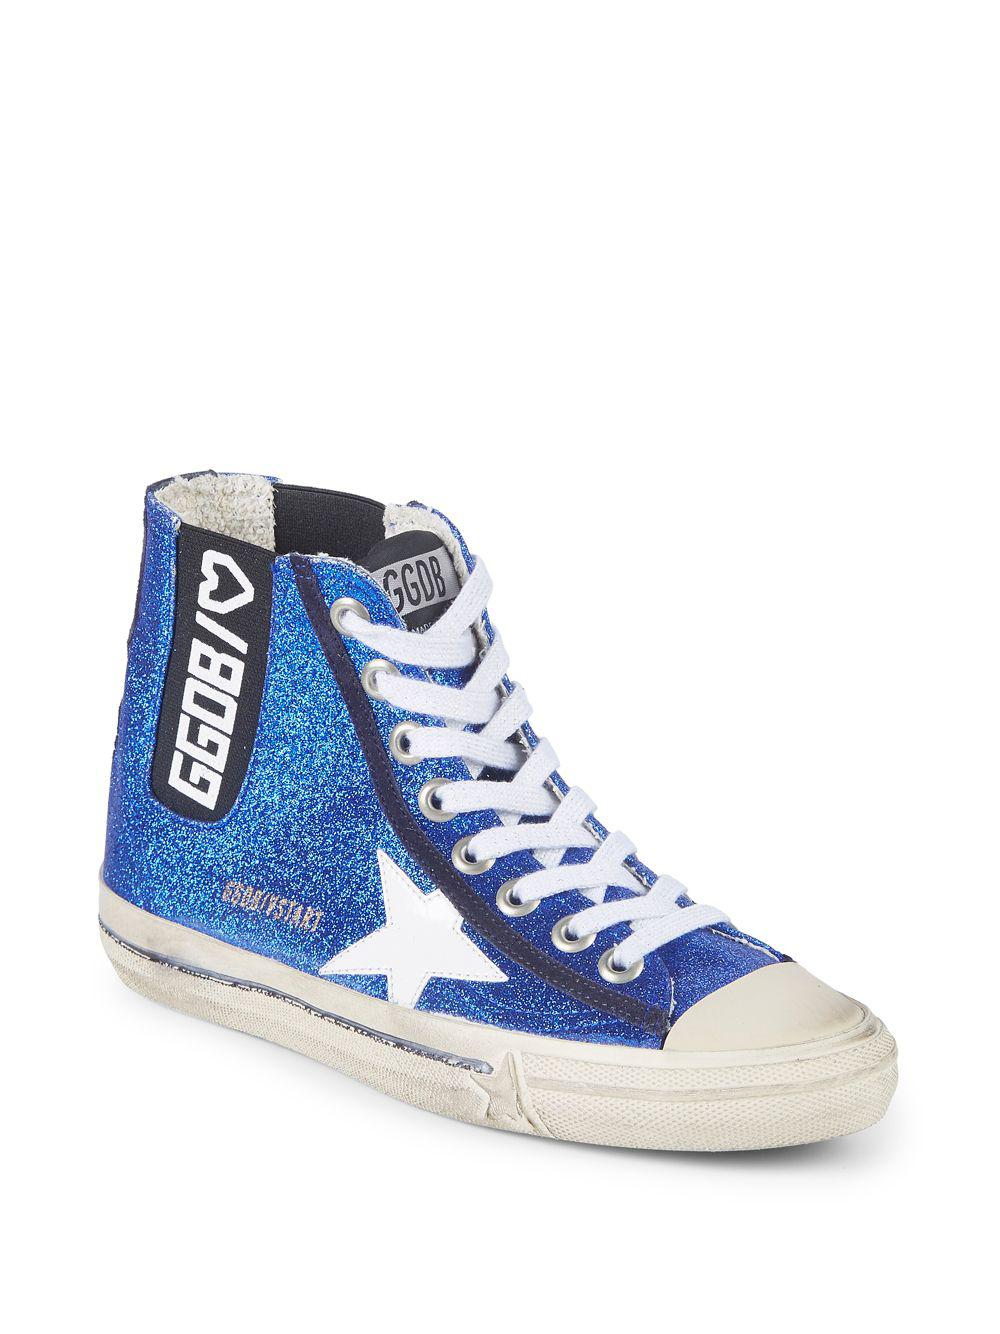 233cca7739b6 Golden Goose Deluxe Brand High-top Leather Logo Sneakers in Blue for ...